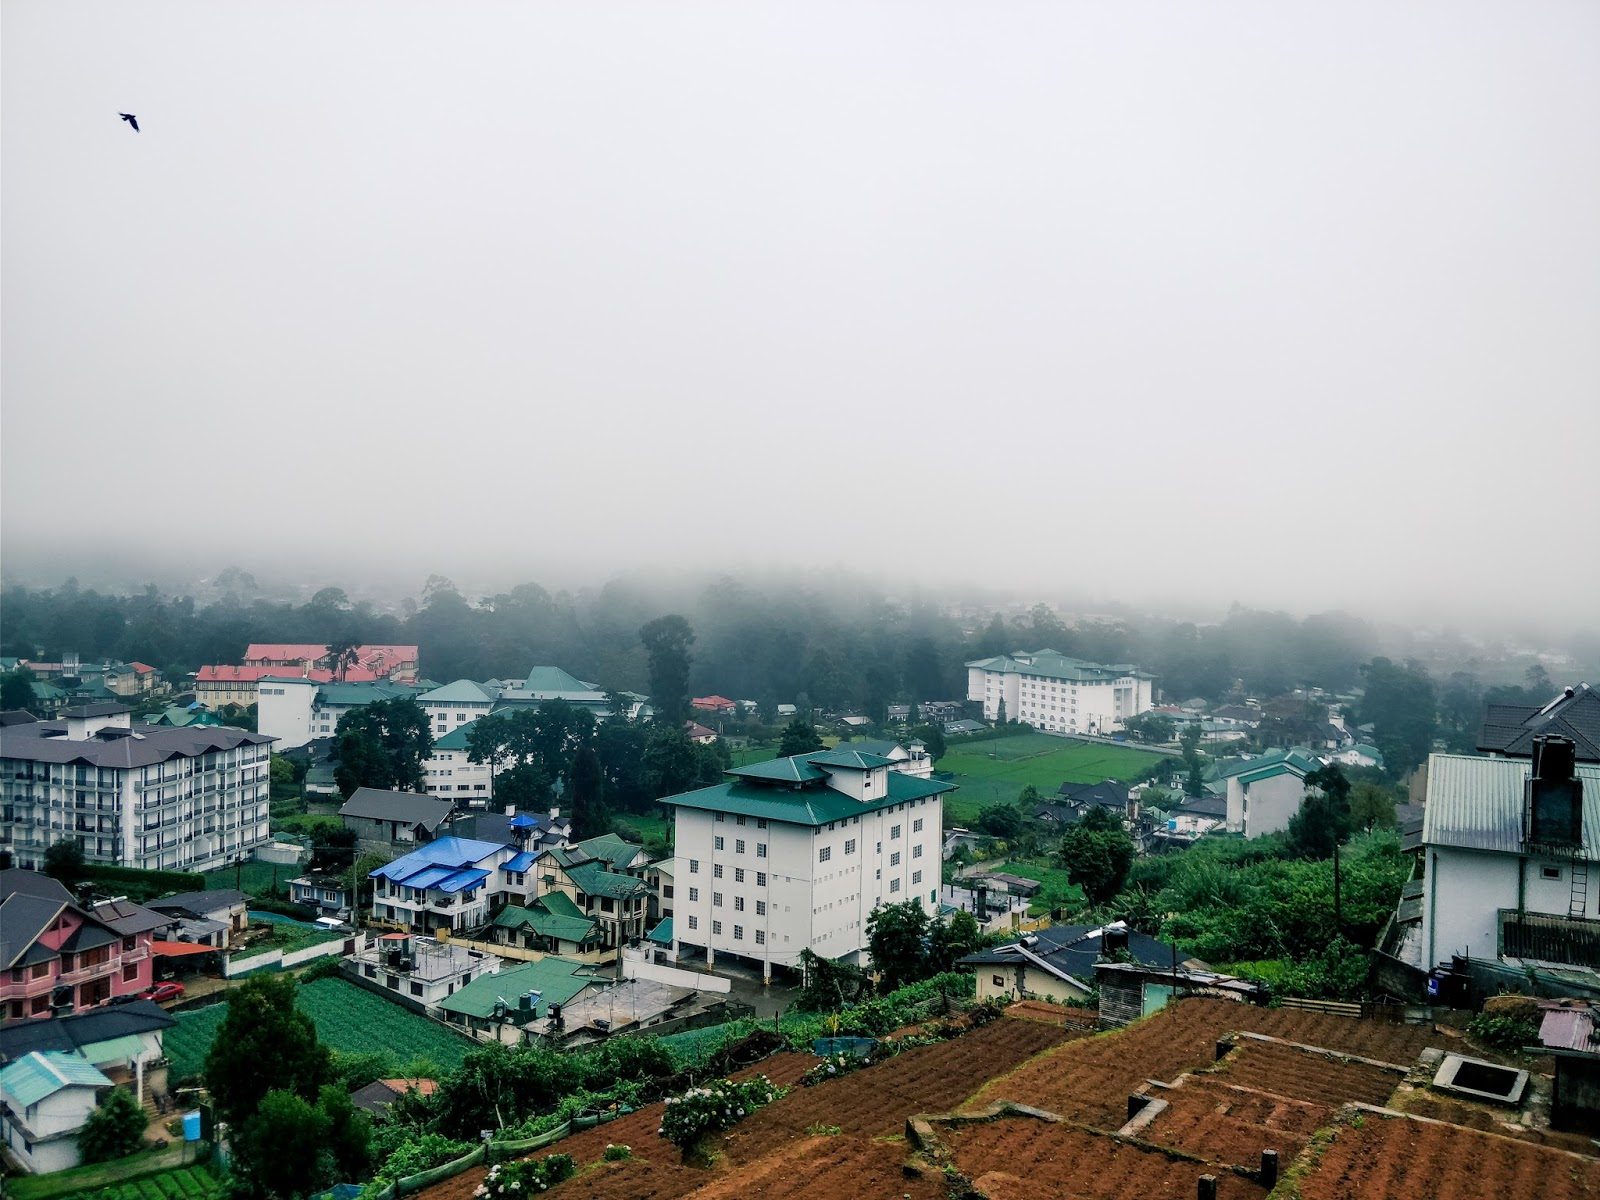 Foggy view from Villa de Roshe in Nuwara Eliya, Sri Lanka